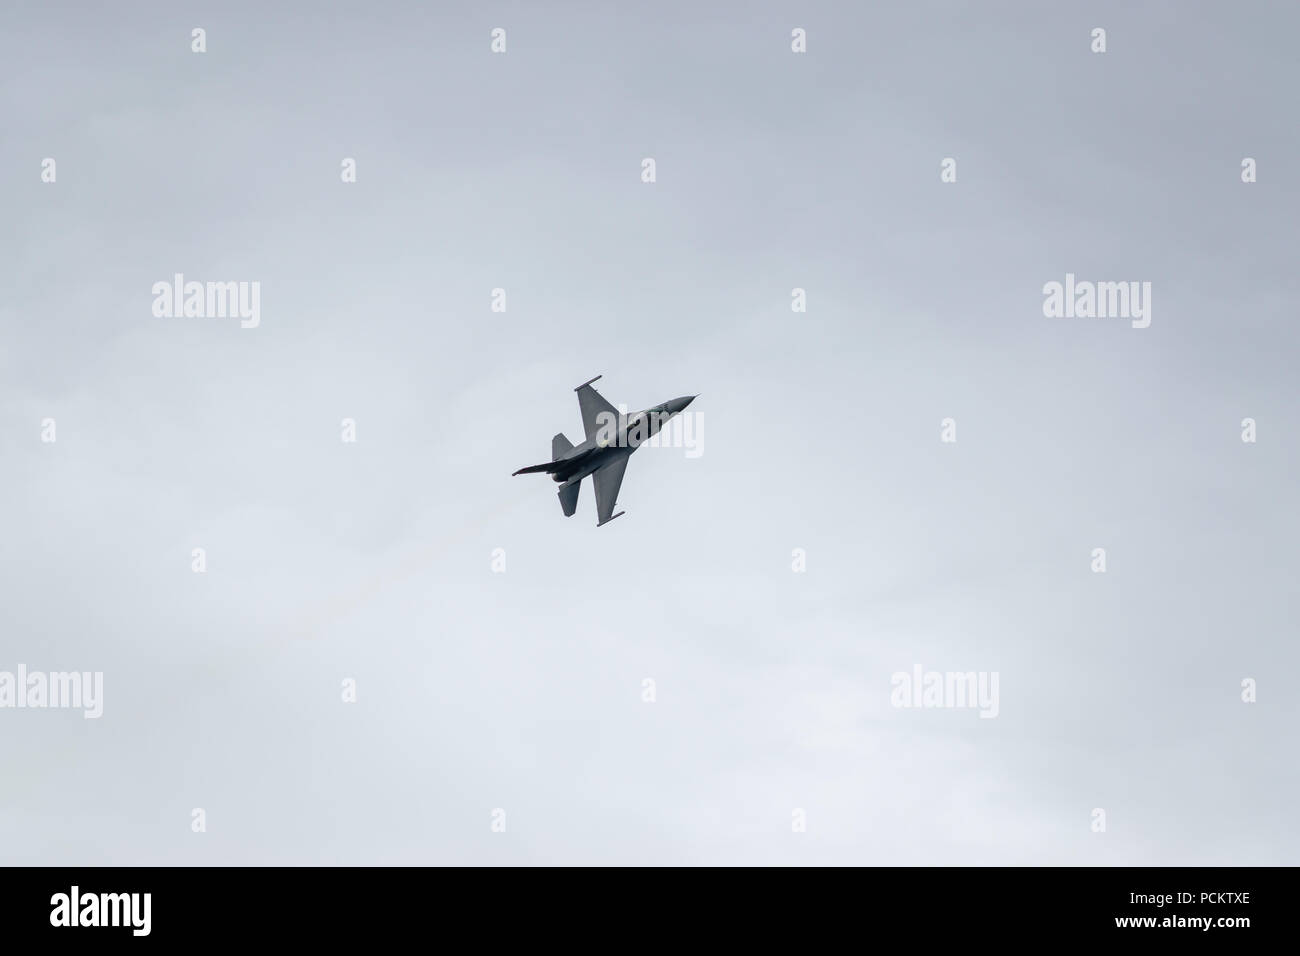 An F-16 performs a flypast at the 2018 Farnborough International Airshow - Stock Image